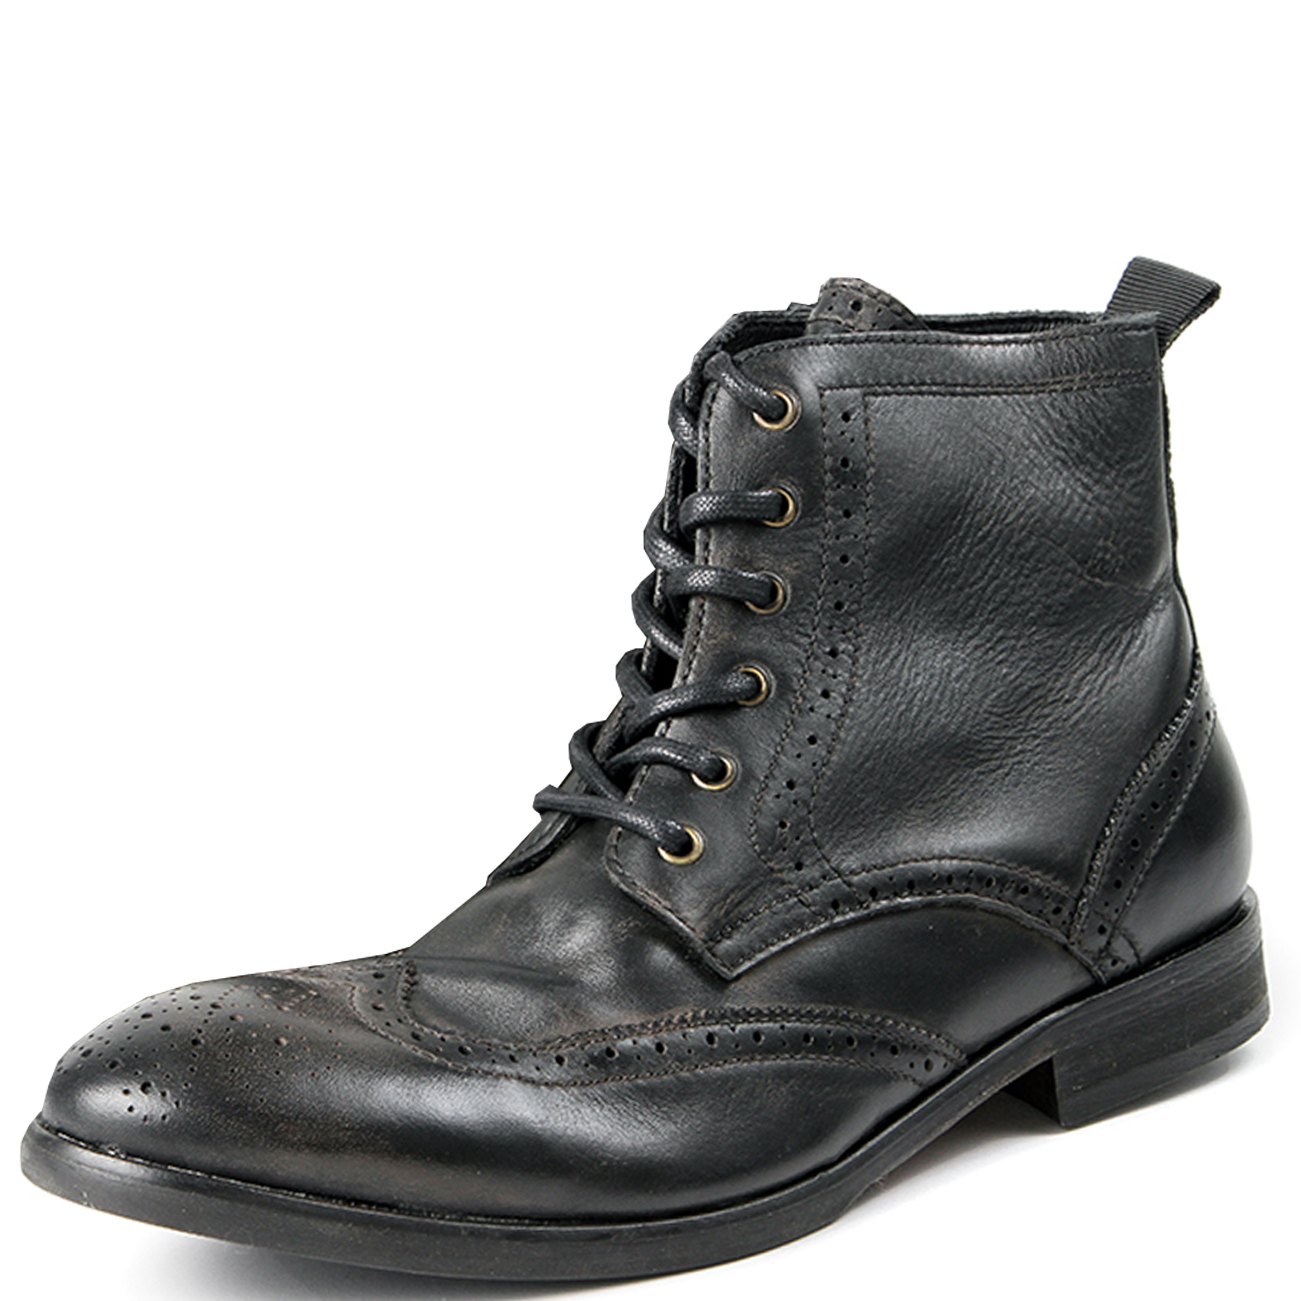 Hudson London Simpson Calf